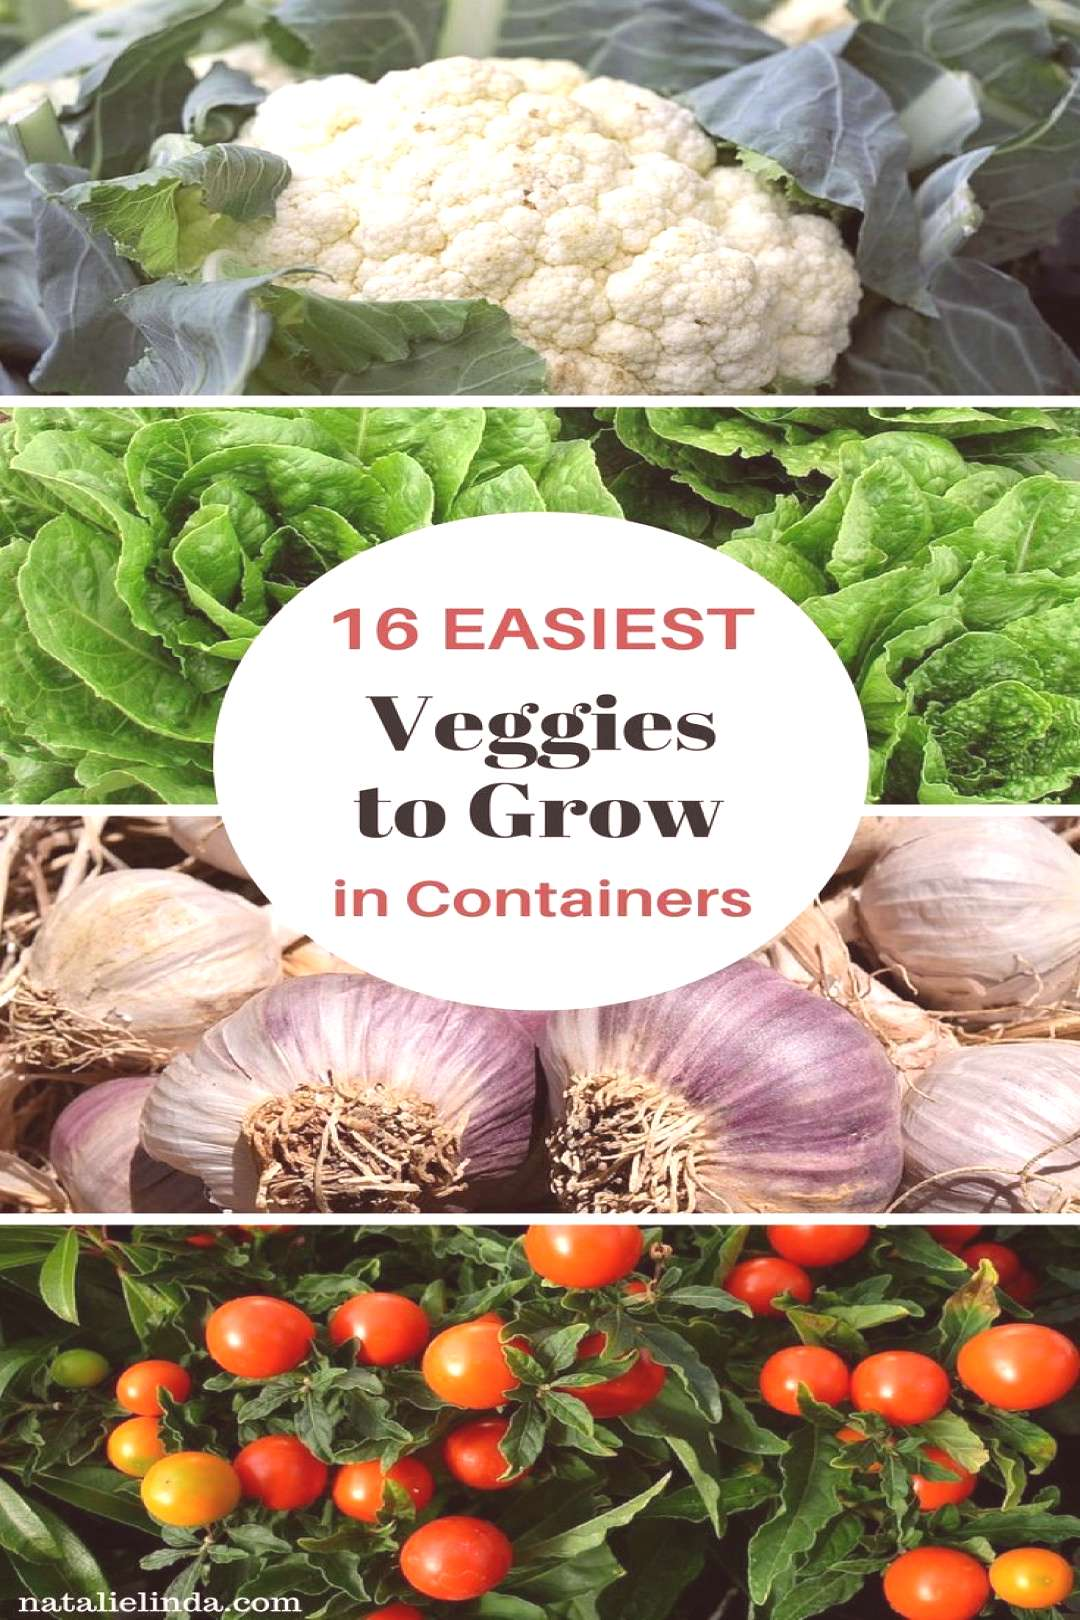 16 Vegetables That Grow In Containers - Natalie Linda These ... -  16 Vegetables That Grow In Conta